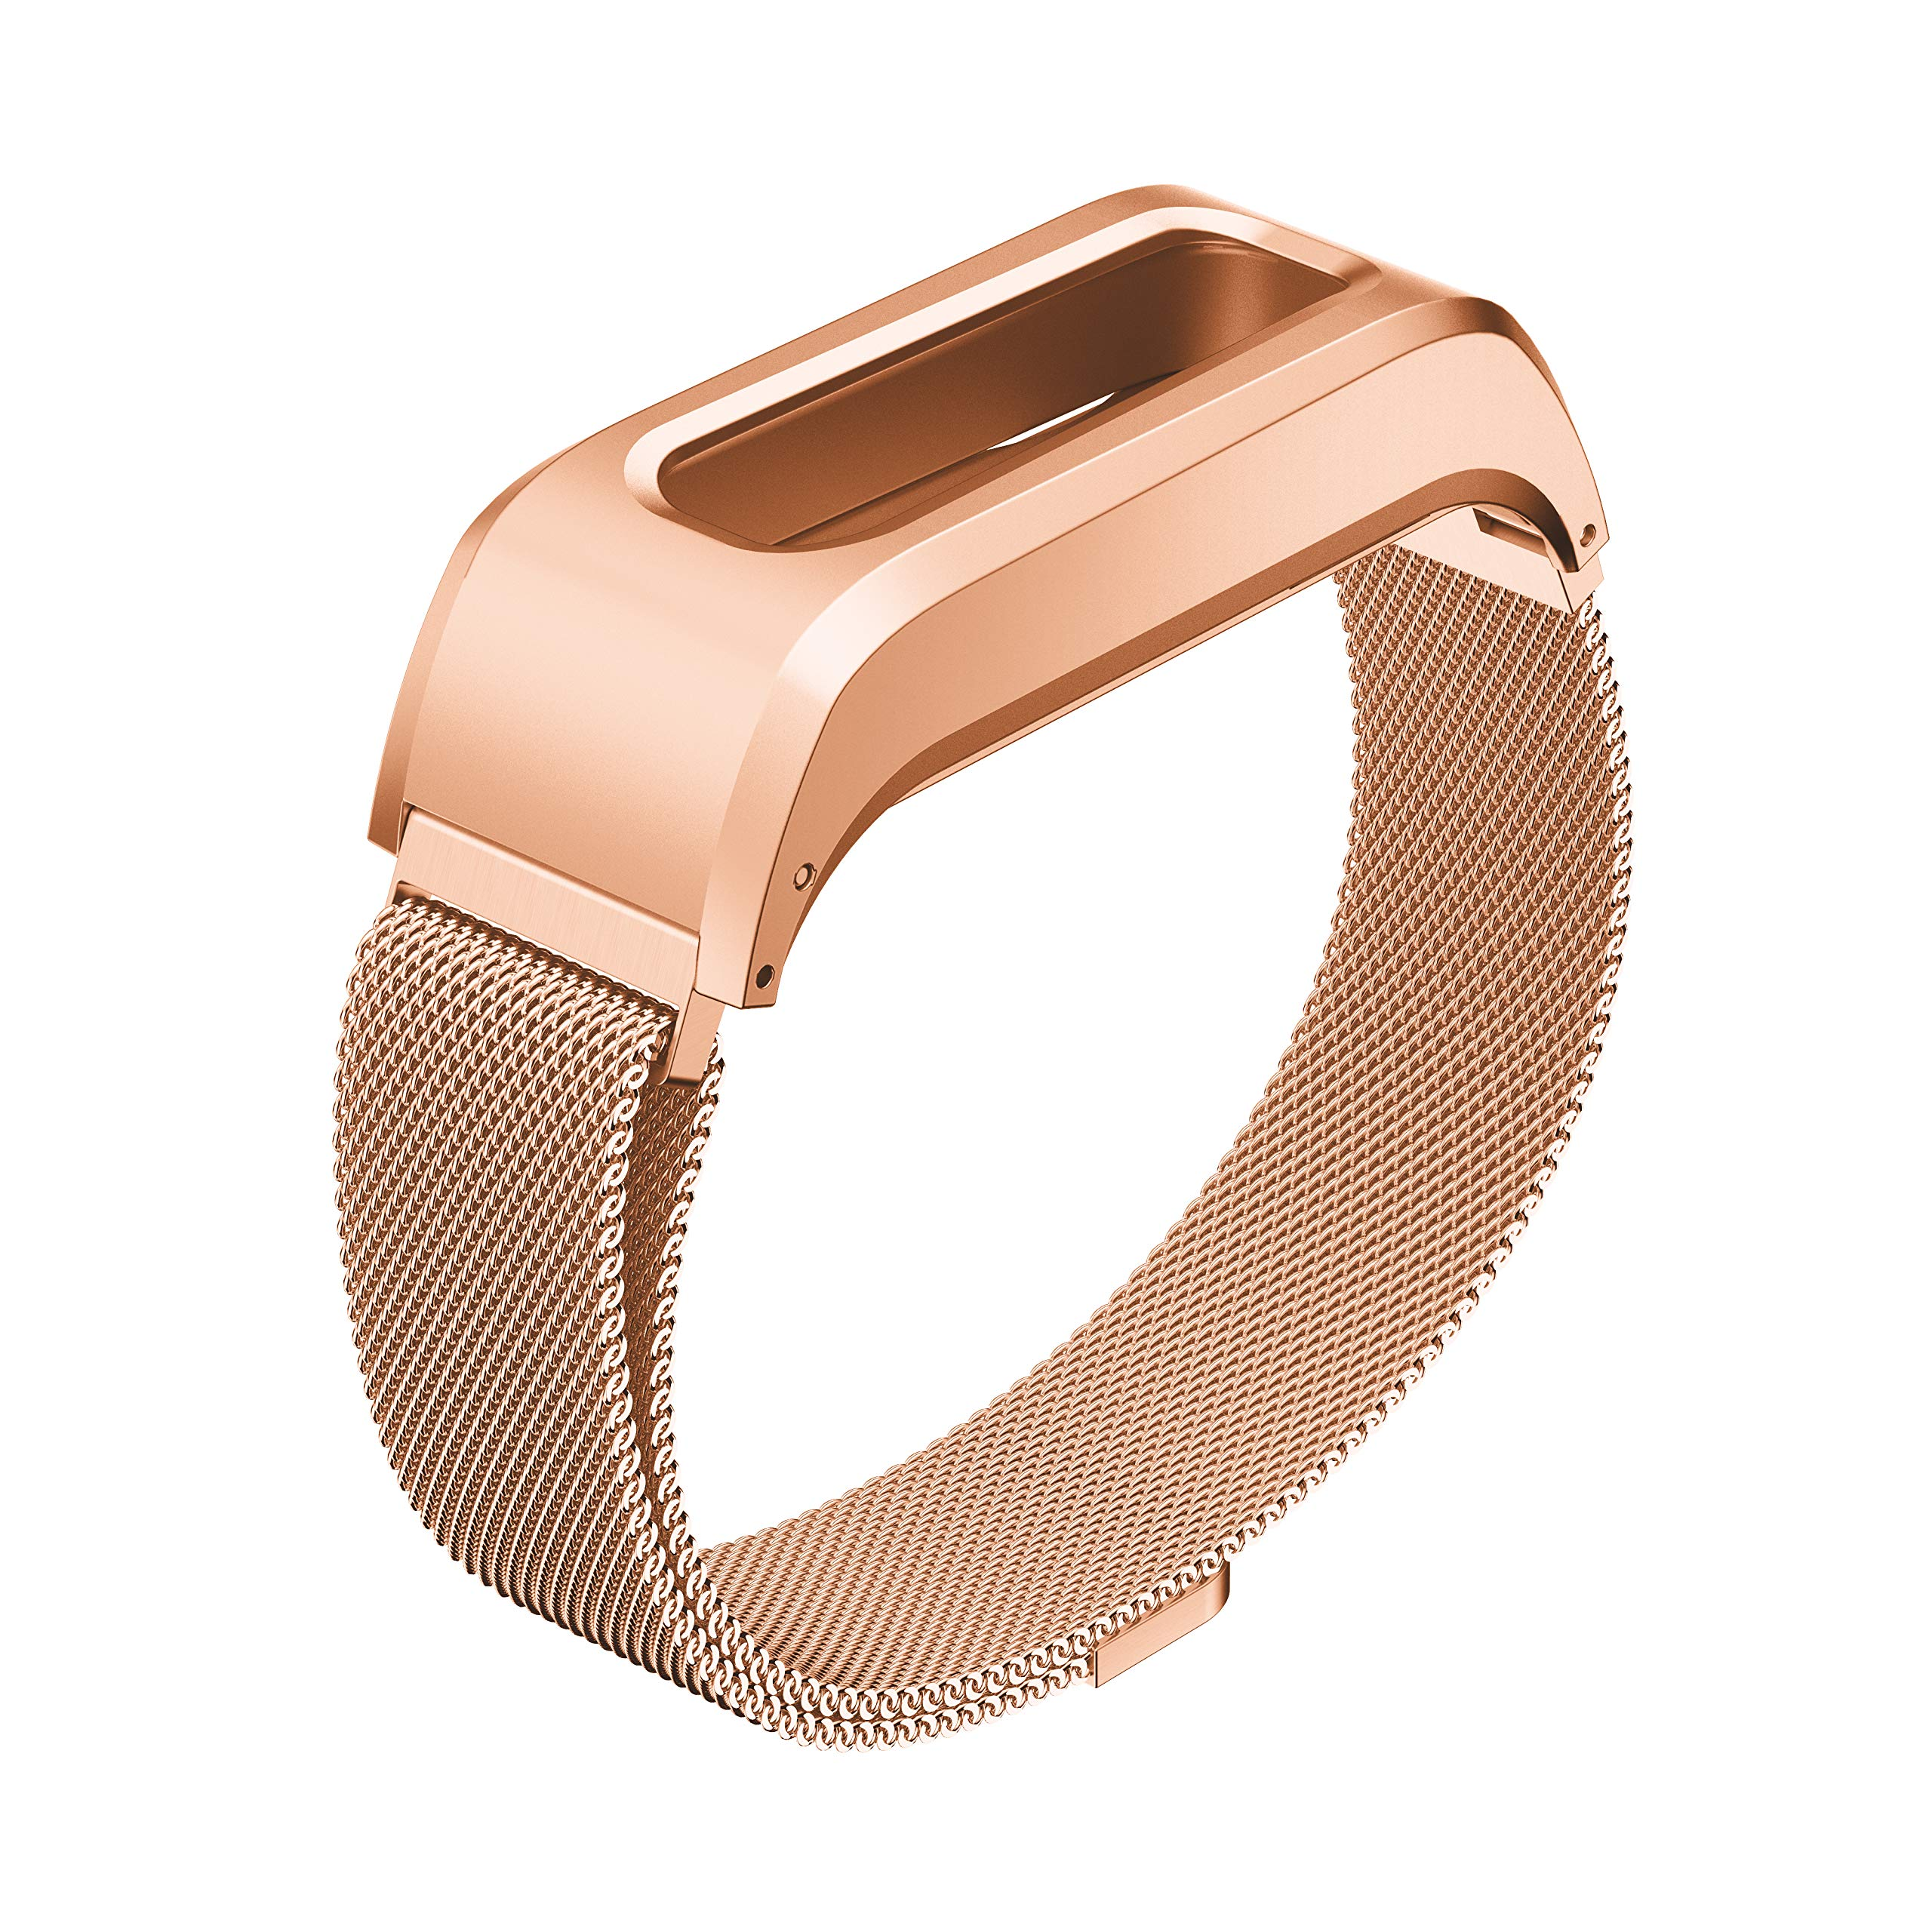 GELISHI Compatible with Fitbit One Replacement Wristband,Accessory Stainless Case + Adjustable Milanese Bracelet Band for Fitbit One Smartwatch(Rose Gold-Large,No Tracker)